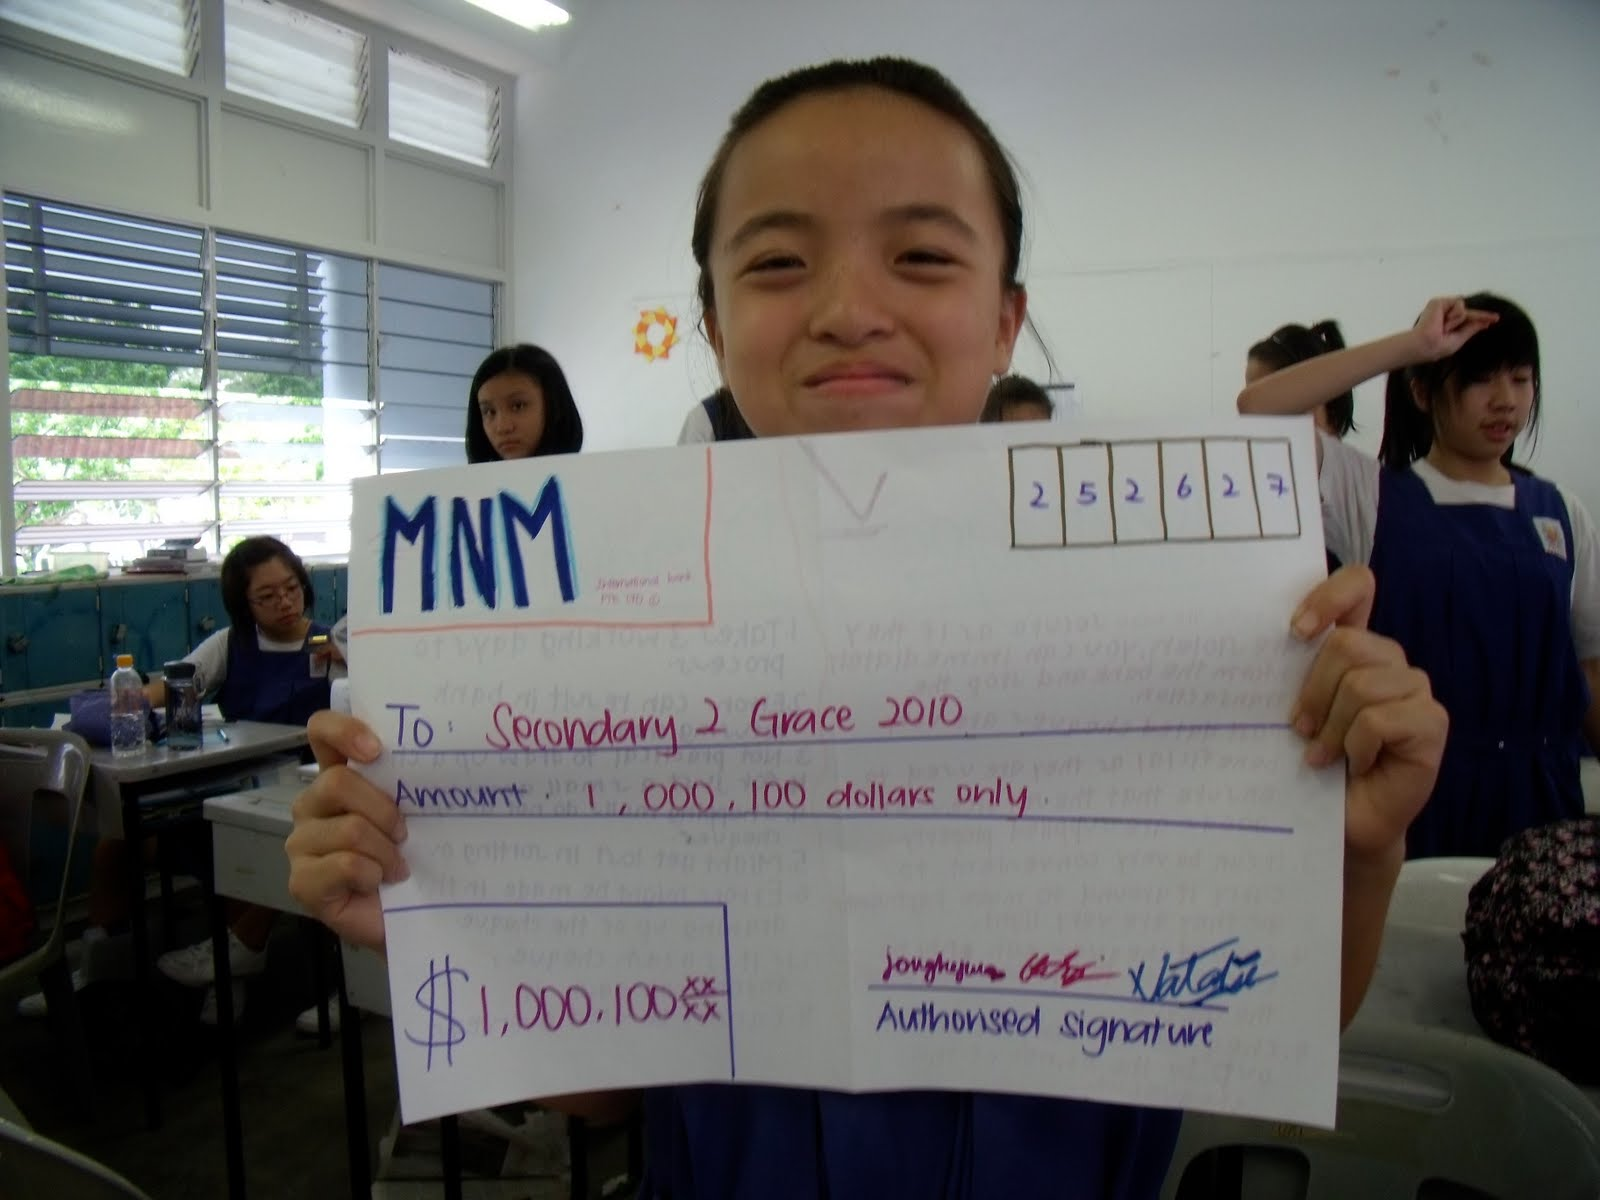 Natalie With A 100 000 100 Cheque D Made By Our Group